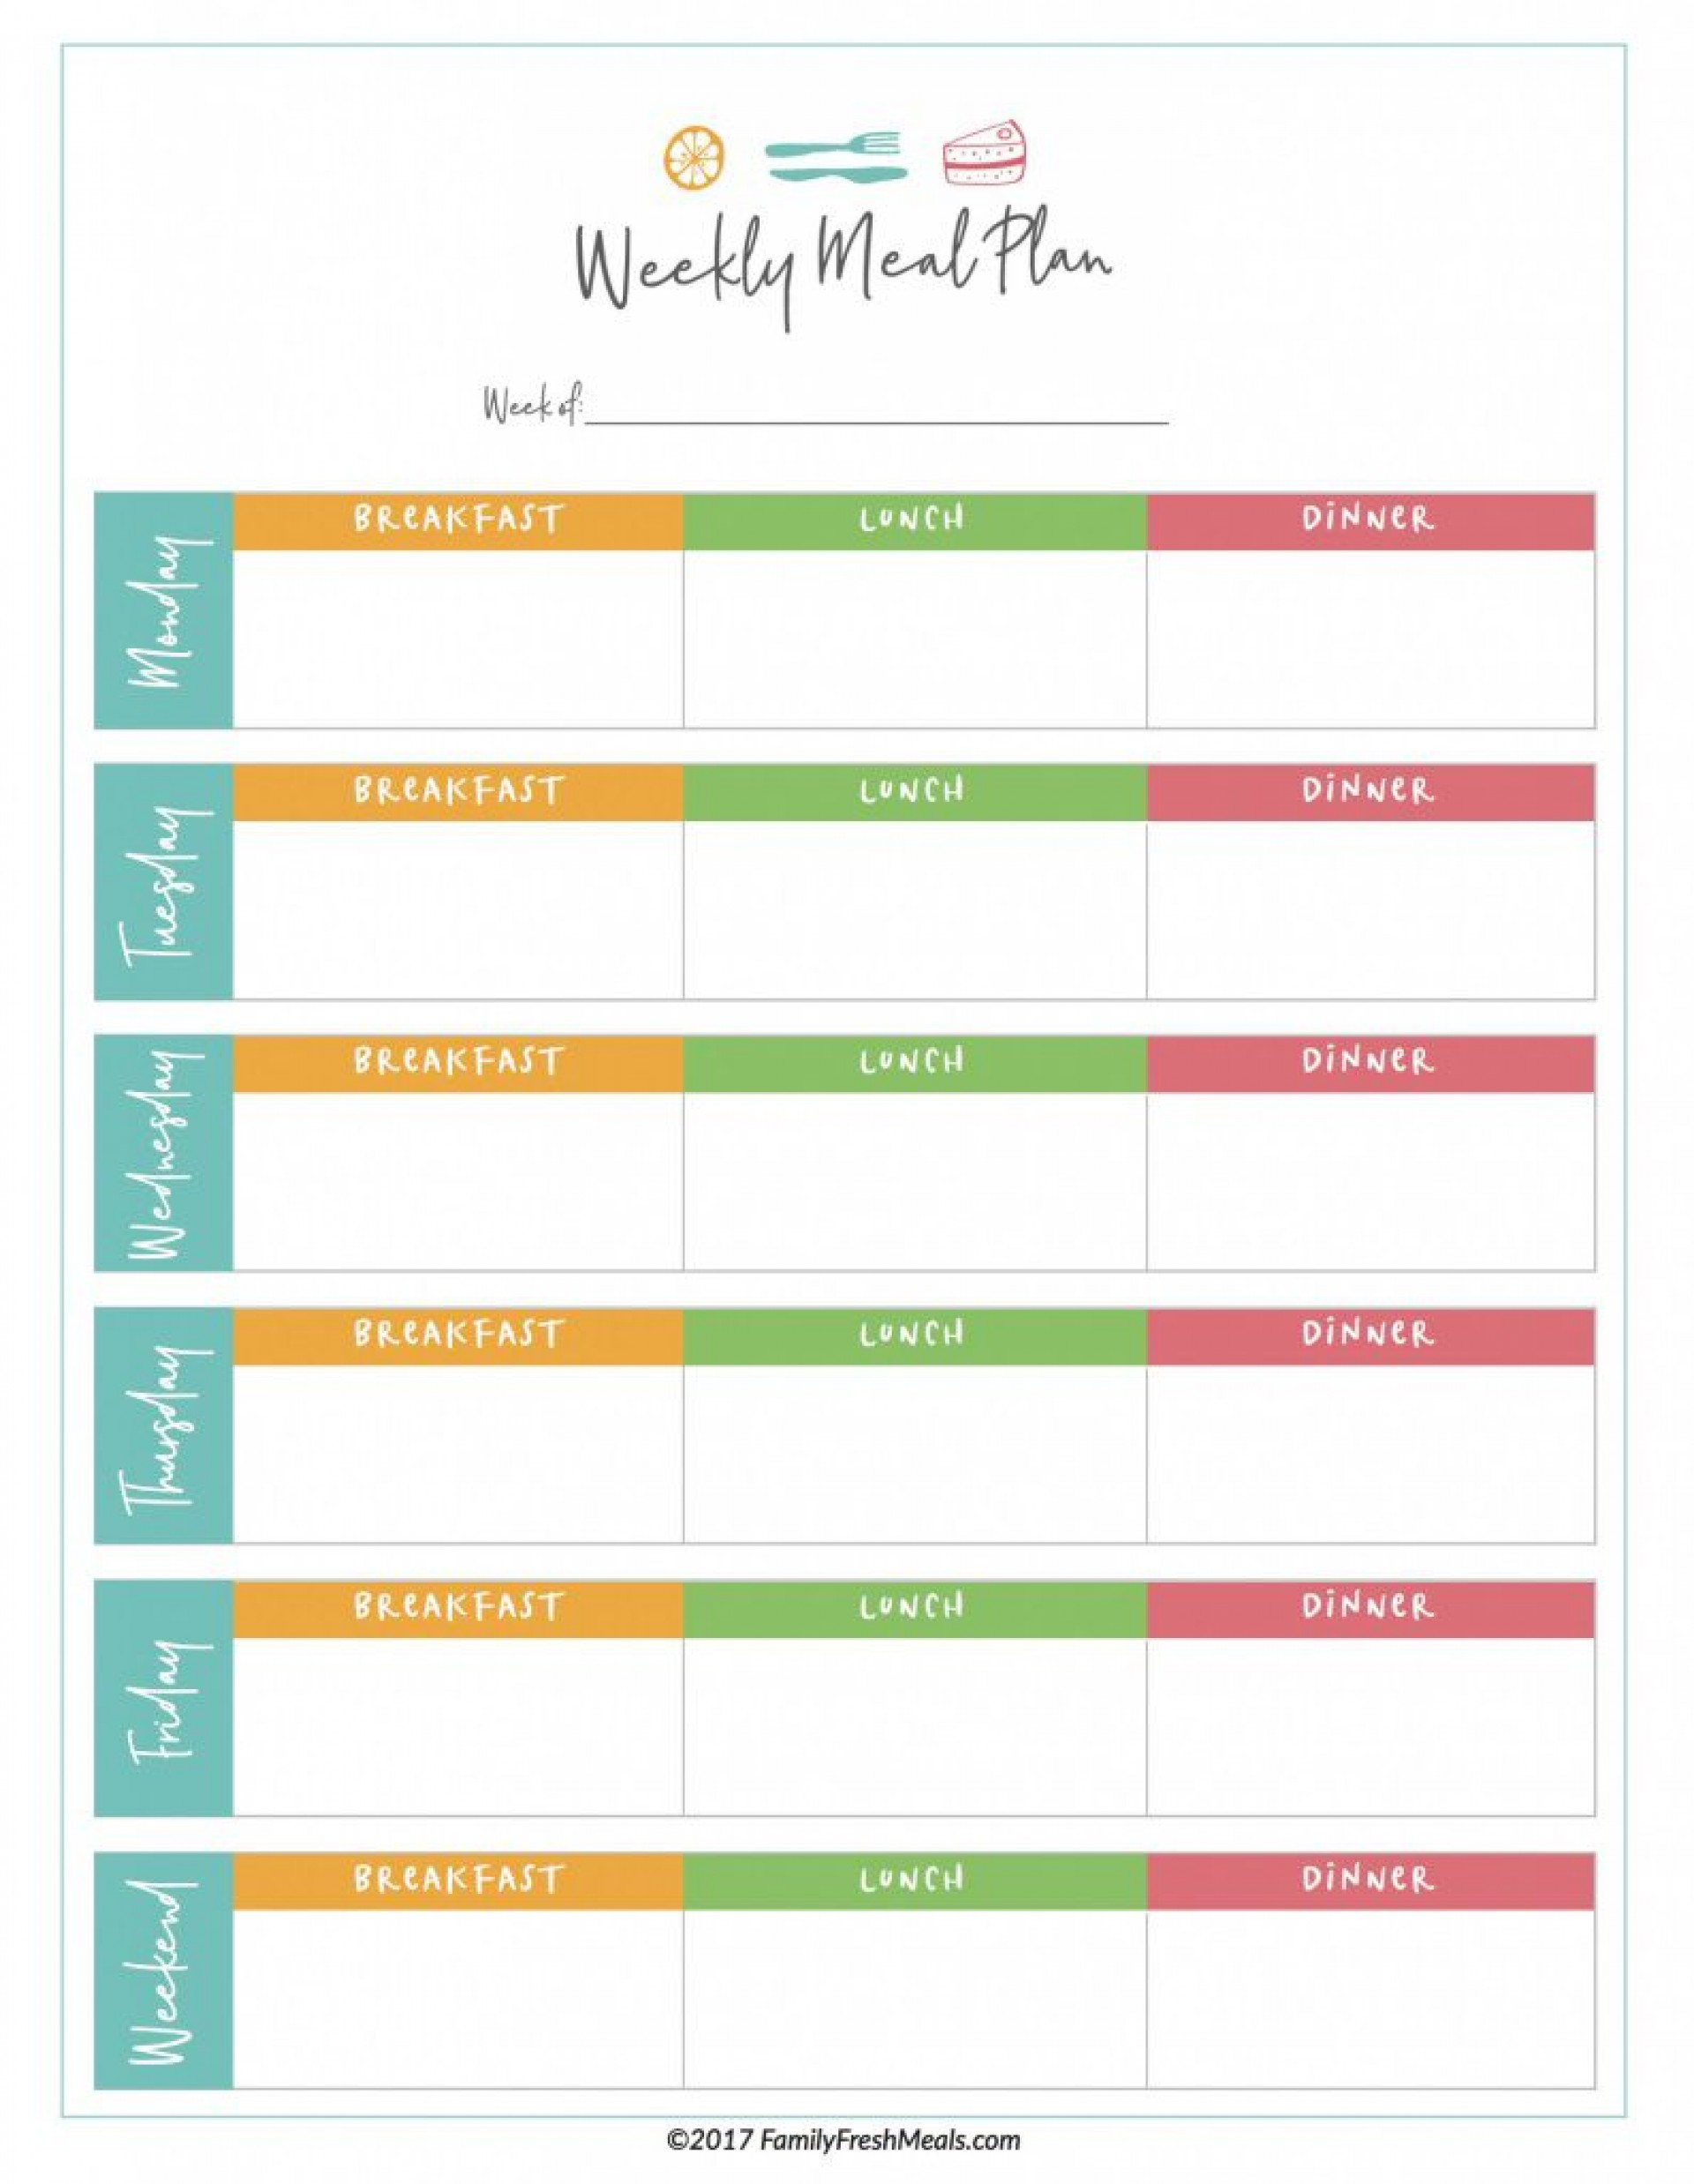 002 Stunning Free Meal Plan Template Picture  Templates Easy Keto Printable Planner For Weight Los1920